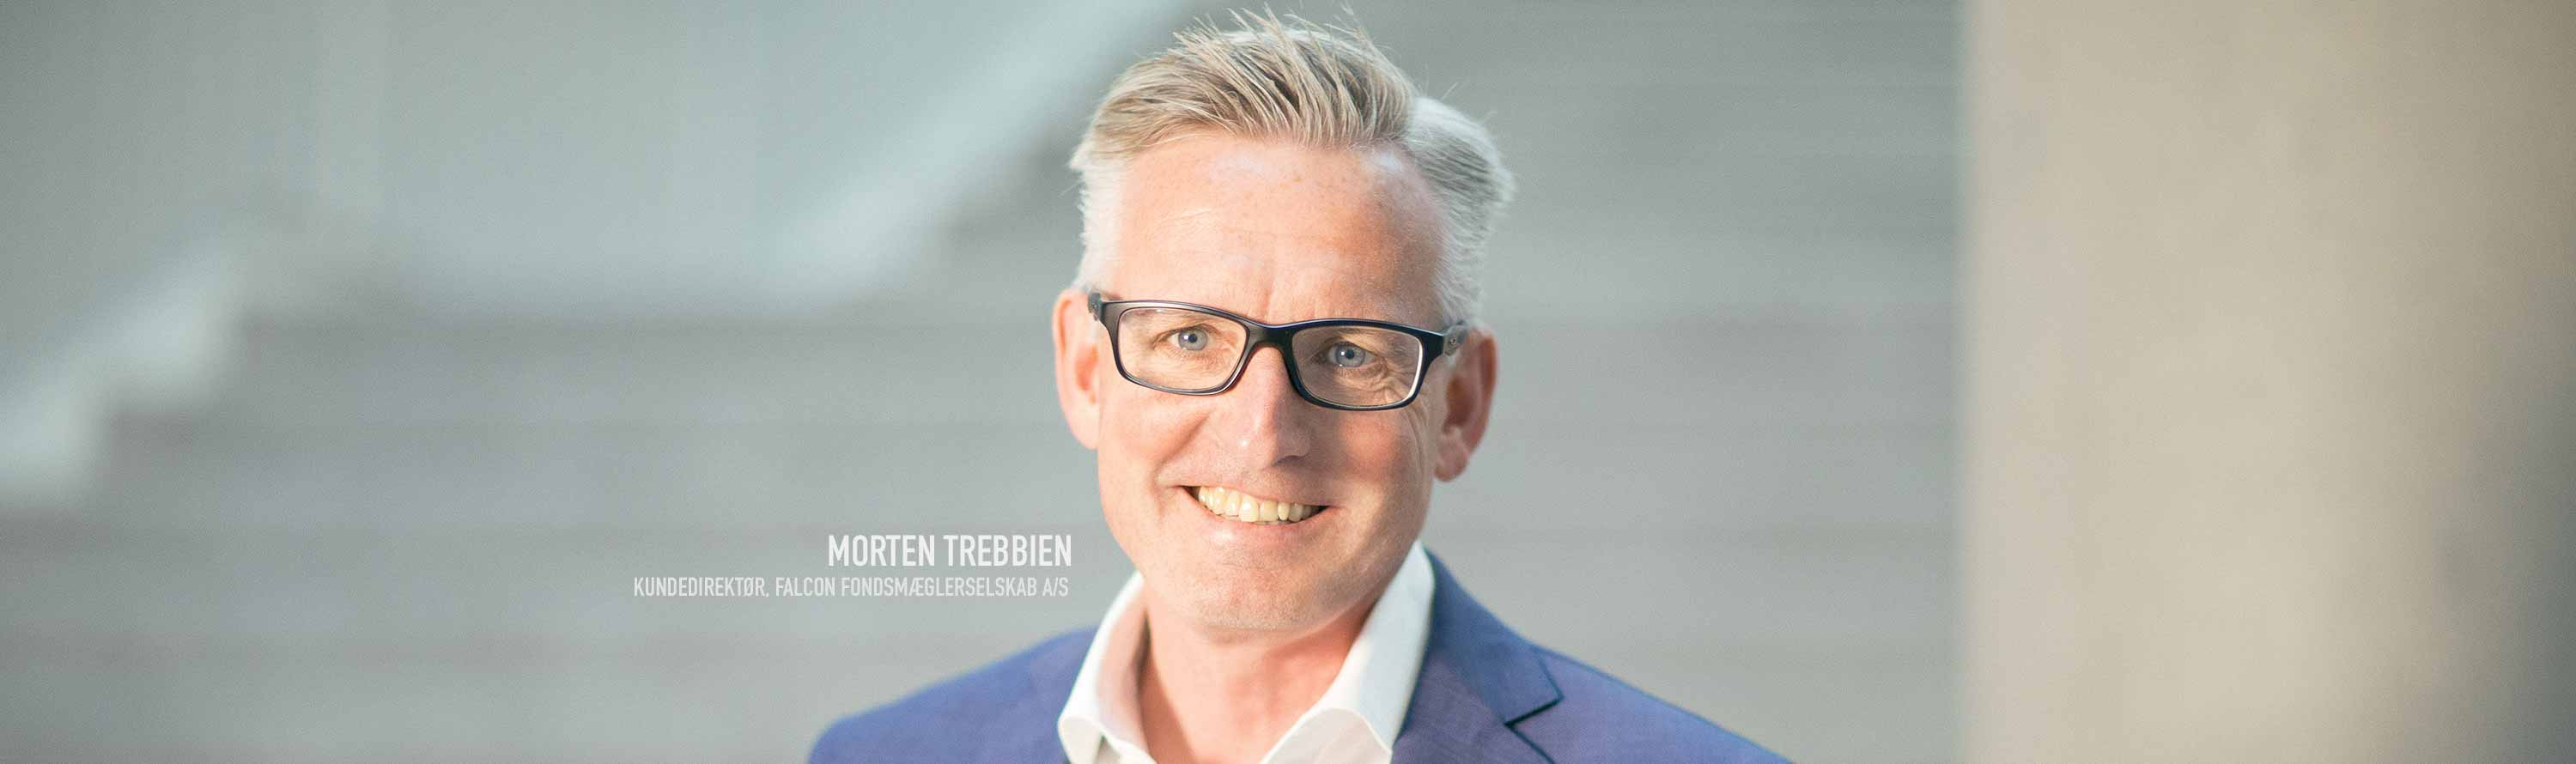 Morten Trebbien, Kundedirektør, Falcon Fondsmæglerselskab A/S